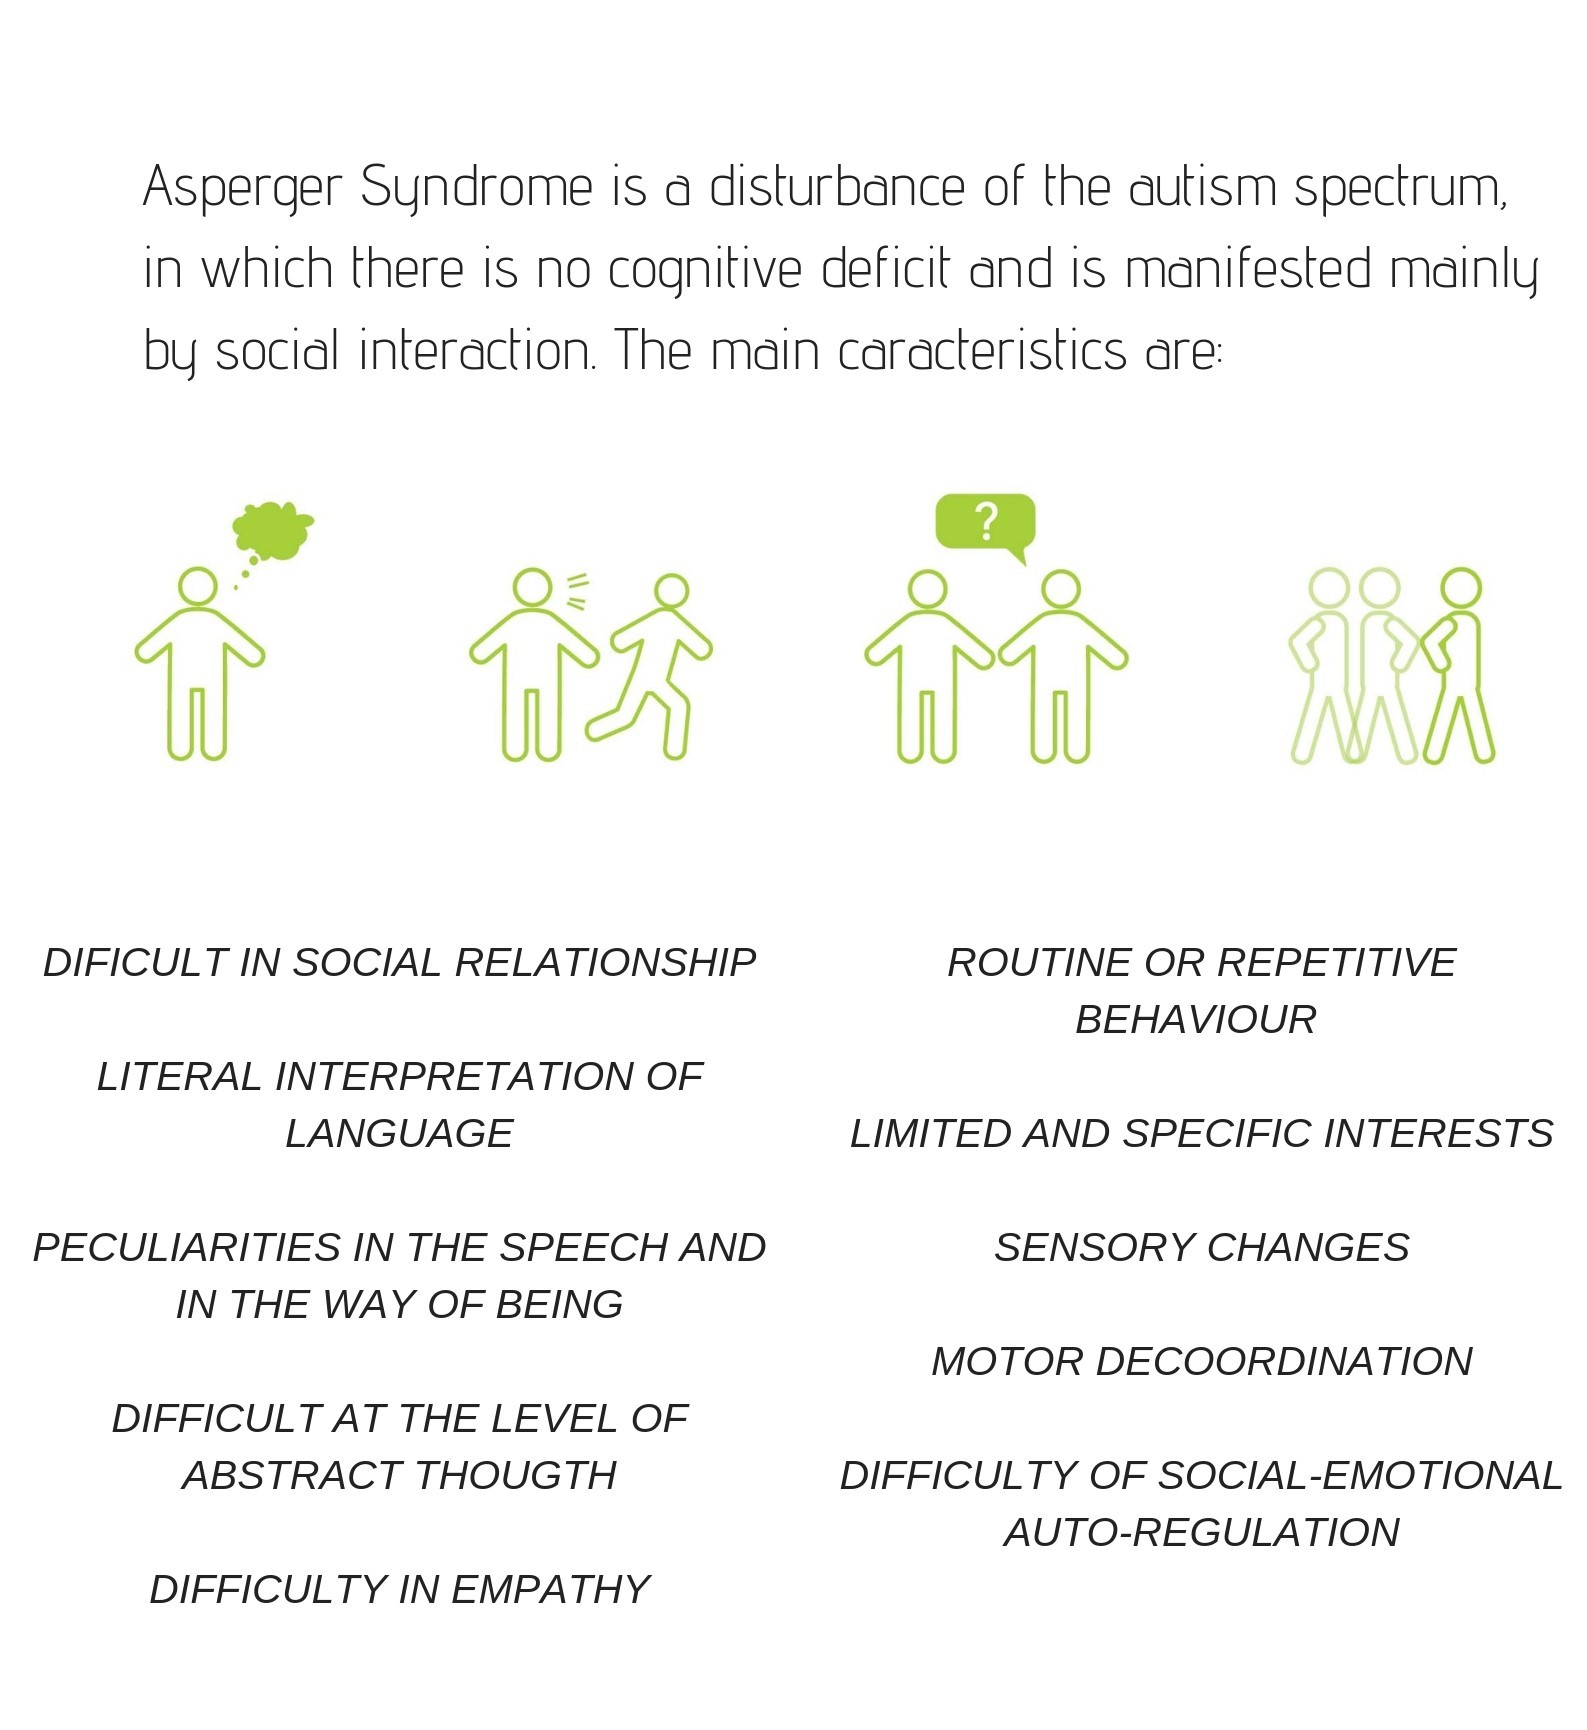 asperger-syndrome1.jpg